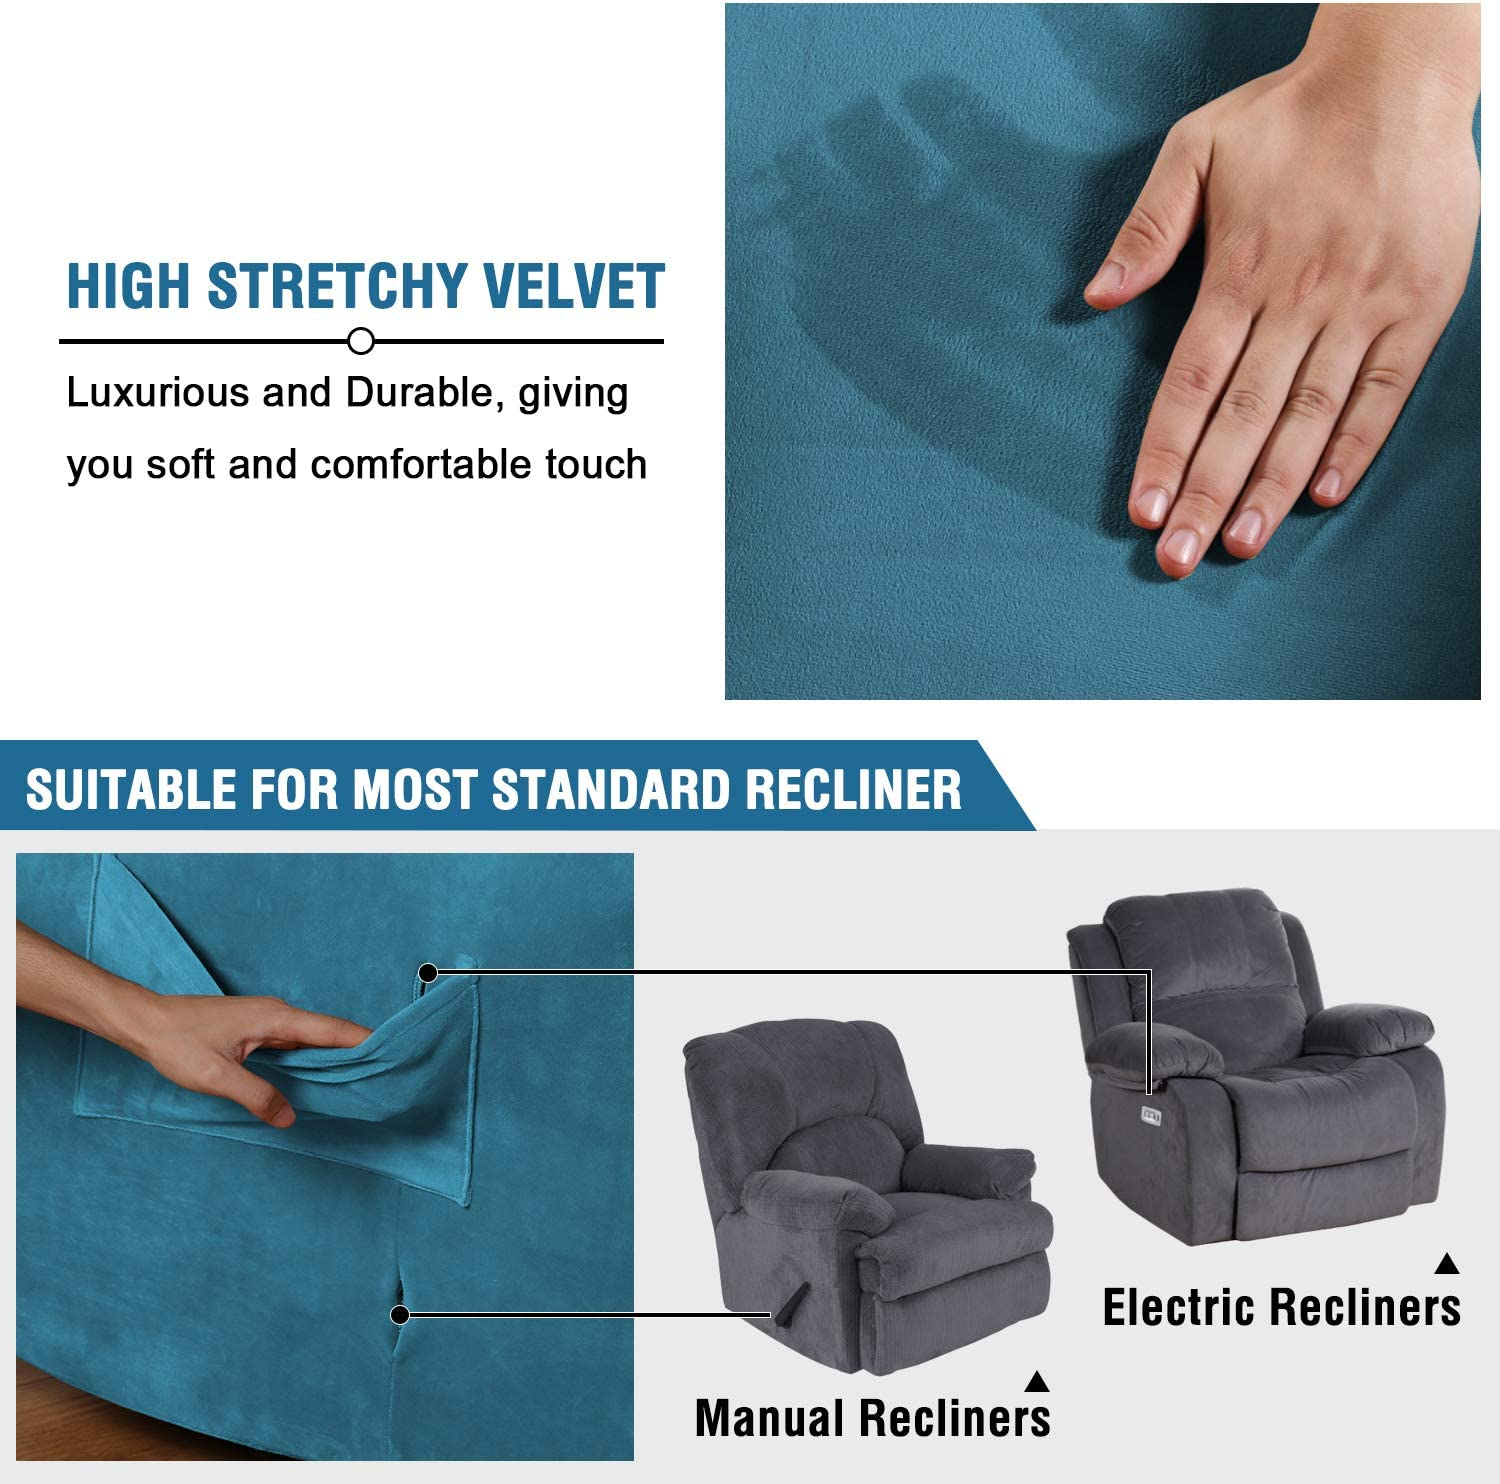 Recliner, Camel H.VERSAILTEX Stretch Recliner Slipcovers 1-Piece Modern Rich Velvet Plush Sofa Furniture Cover Form Fit Stretch Stylish Recliner Cover//Protector Feature Rich and Soft Fabric